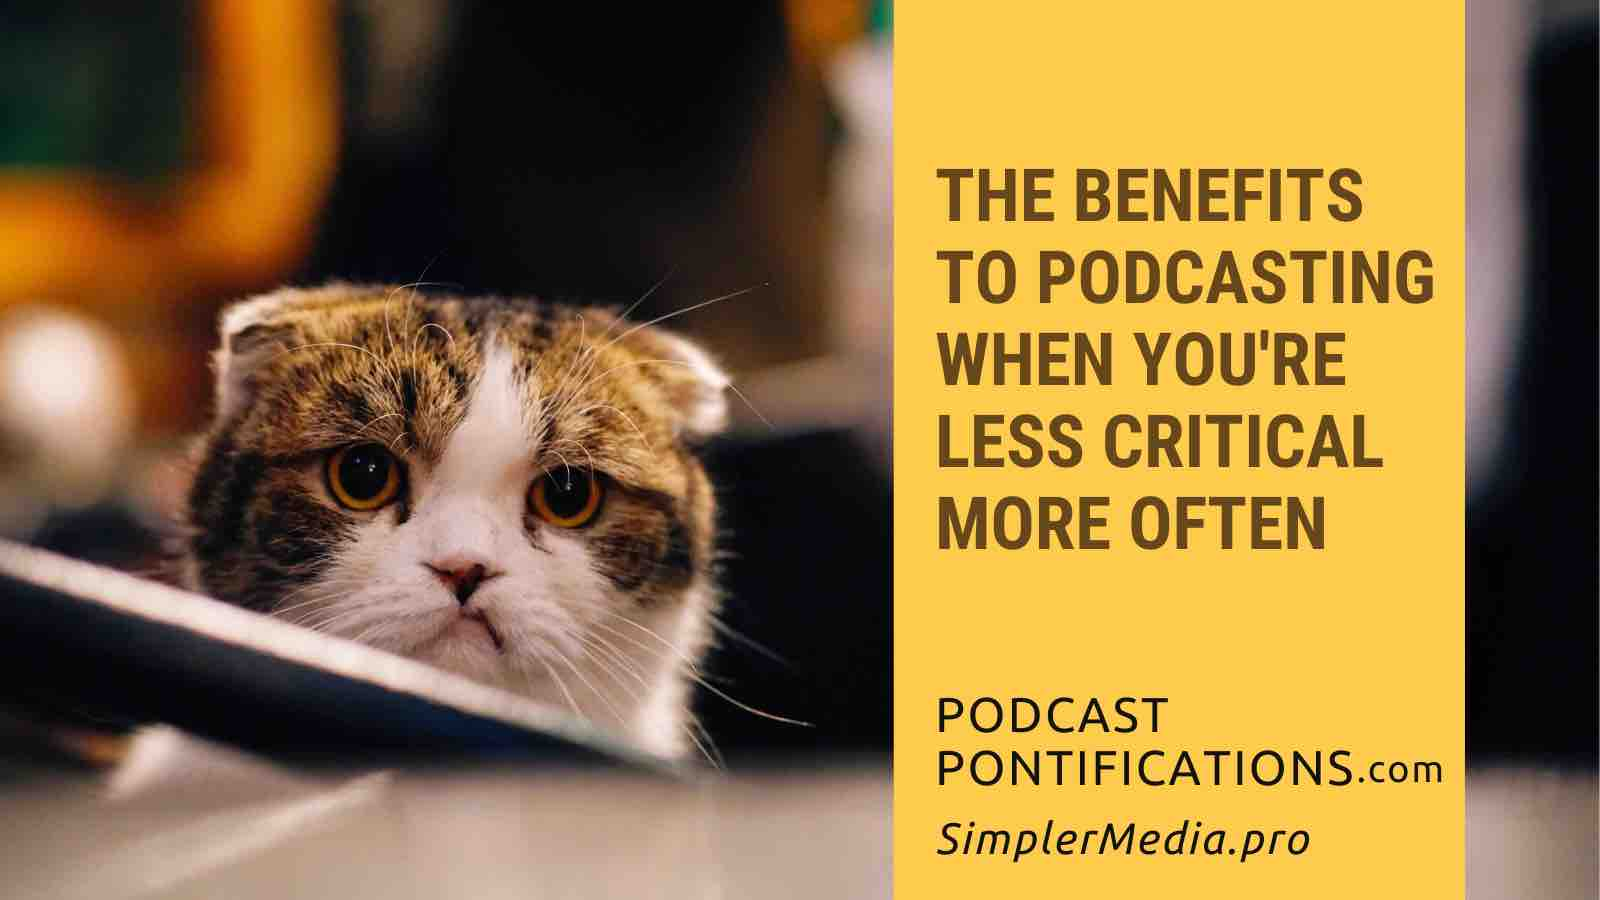 The Benefits To Podcasting When You're Less Critical More Often